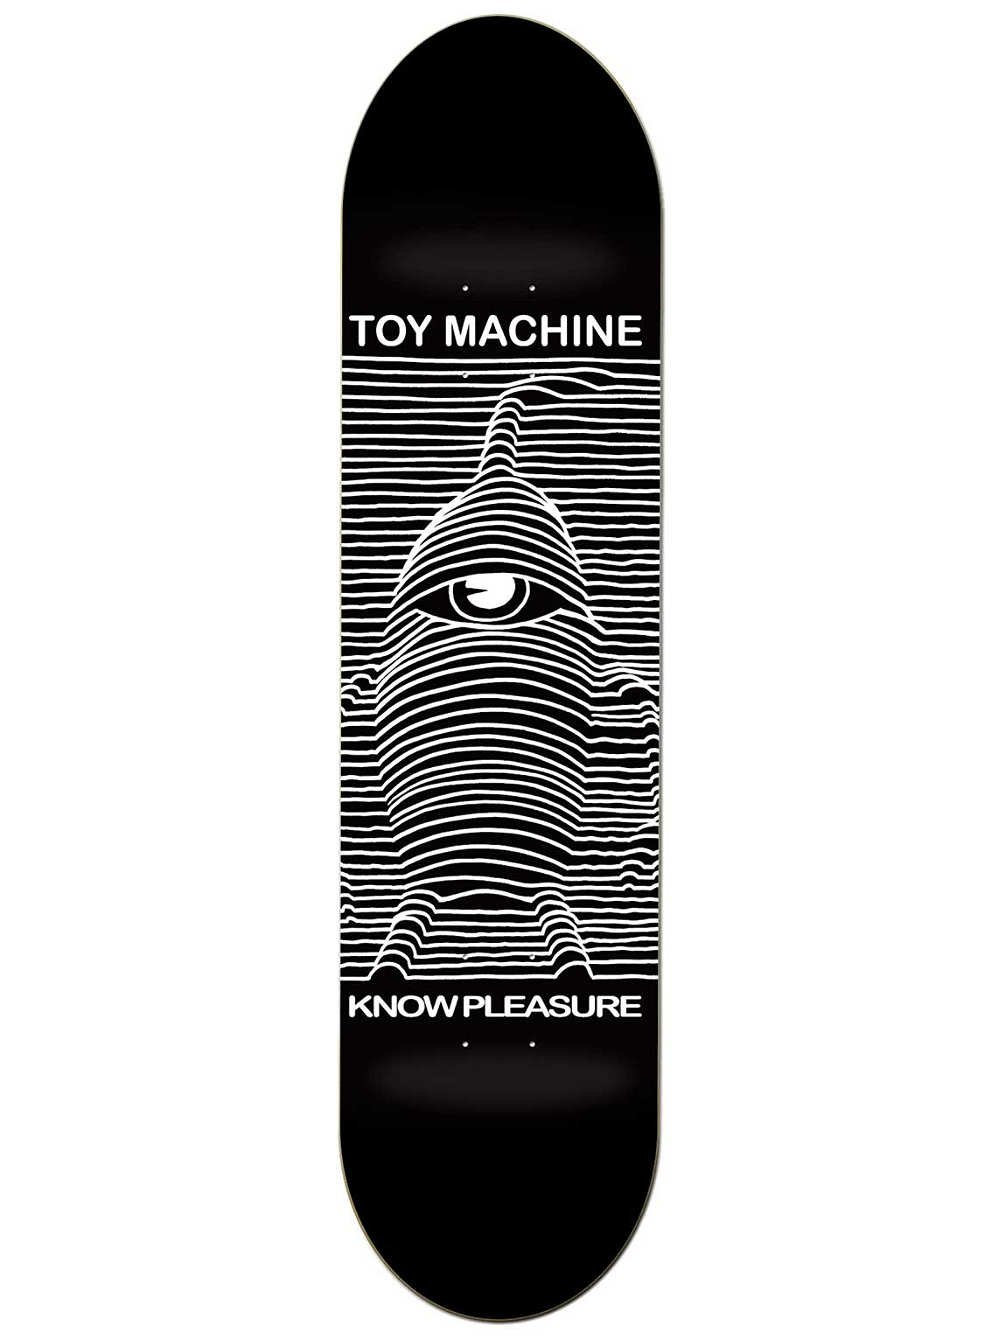 Toy Machine Skateboard Deck Toy Division 8.0 Skate Deck